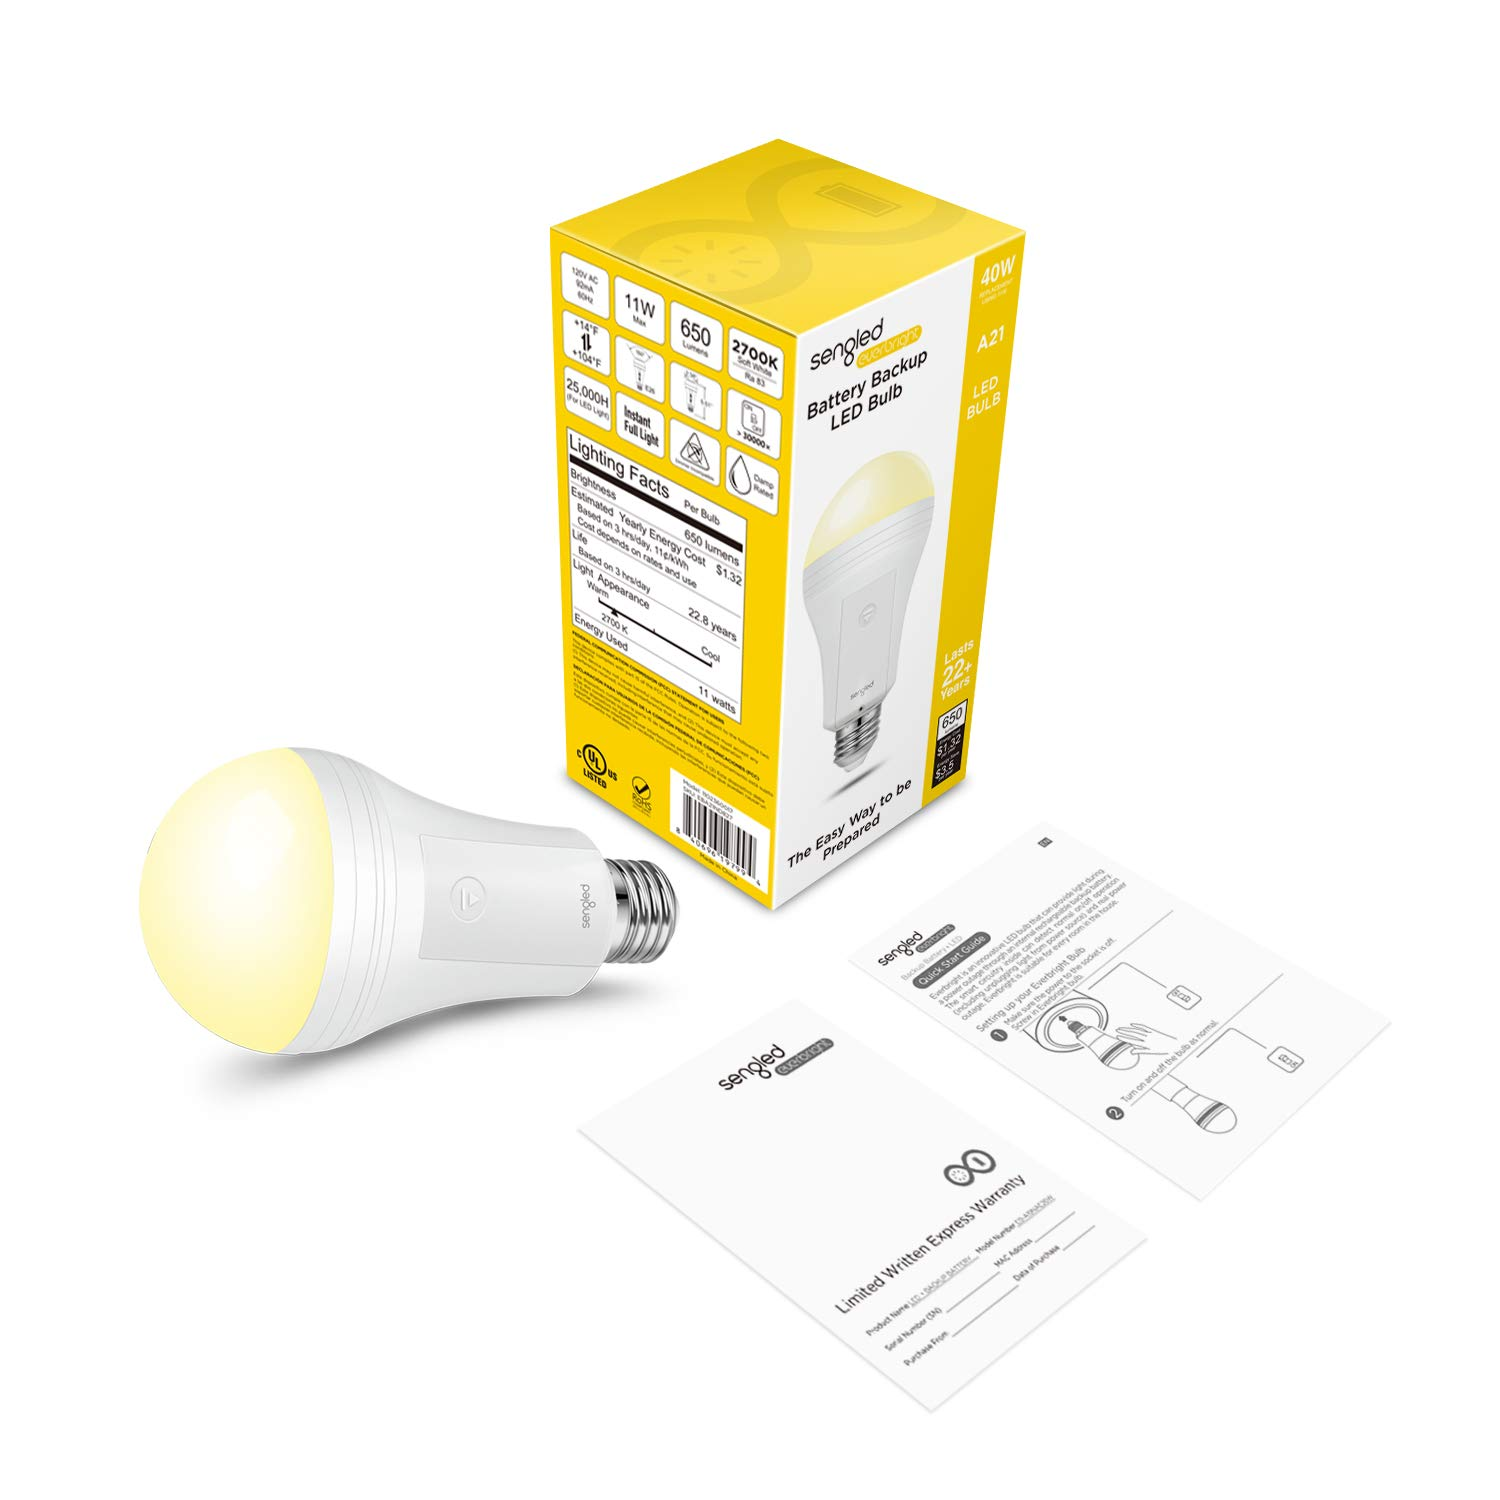 Sengled LED Emergency Light Bulb with Built-in Rechargeable Battery 60W Equivalent 4 Pack E26 Base Up to 12 Hours of Light in Power Outage as a Rechargeable LED Flashlight